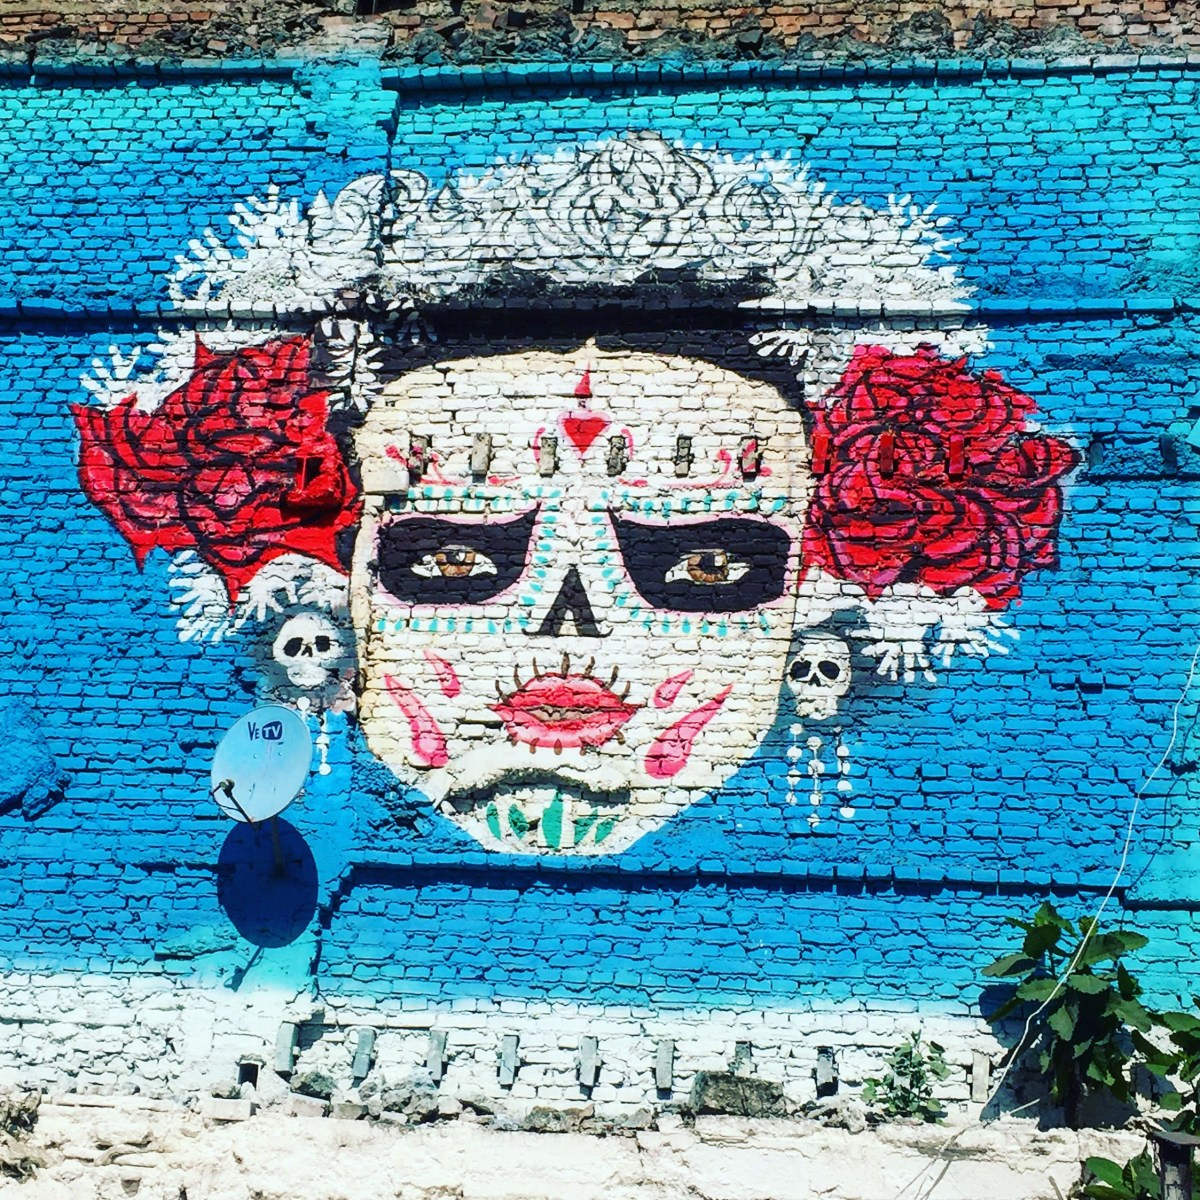 Mexico City | Tacos, Artisans, Pyramids, Frida Kahlo...Boundless Culture to Discover